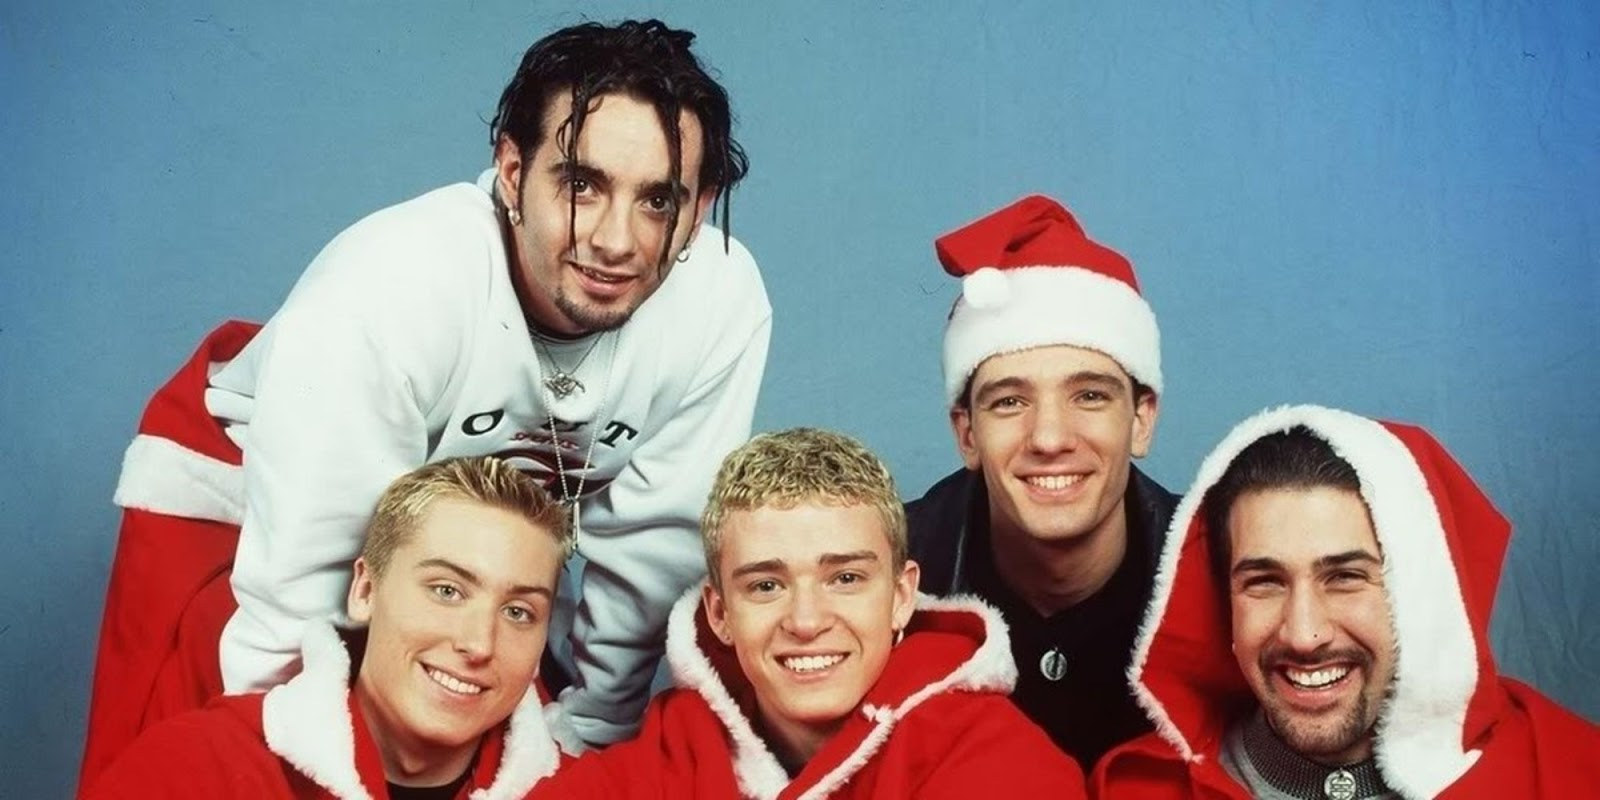 My Favorite Things: Have You Heard? // *Nsync - \